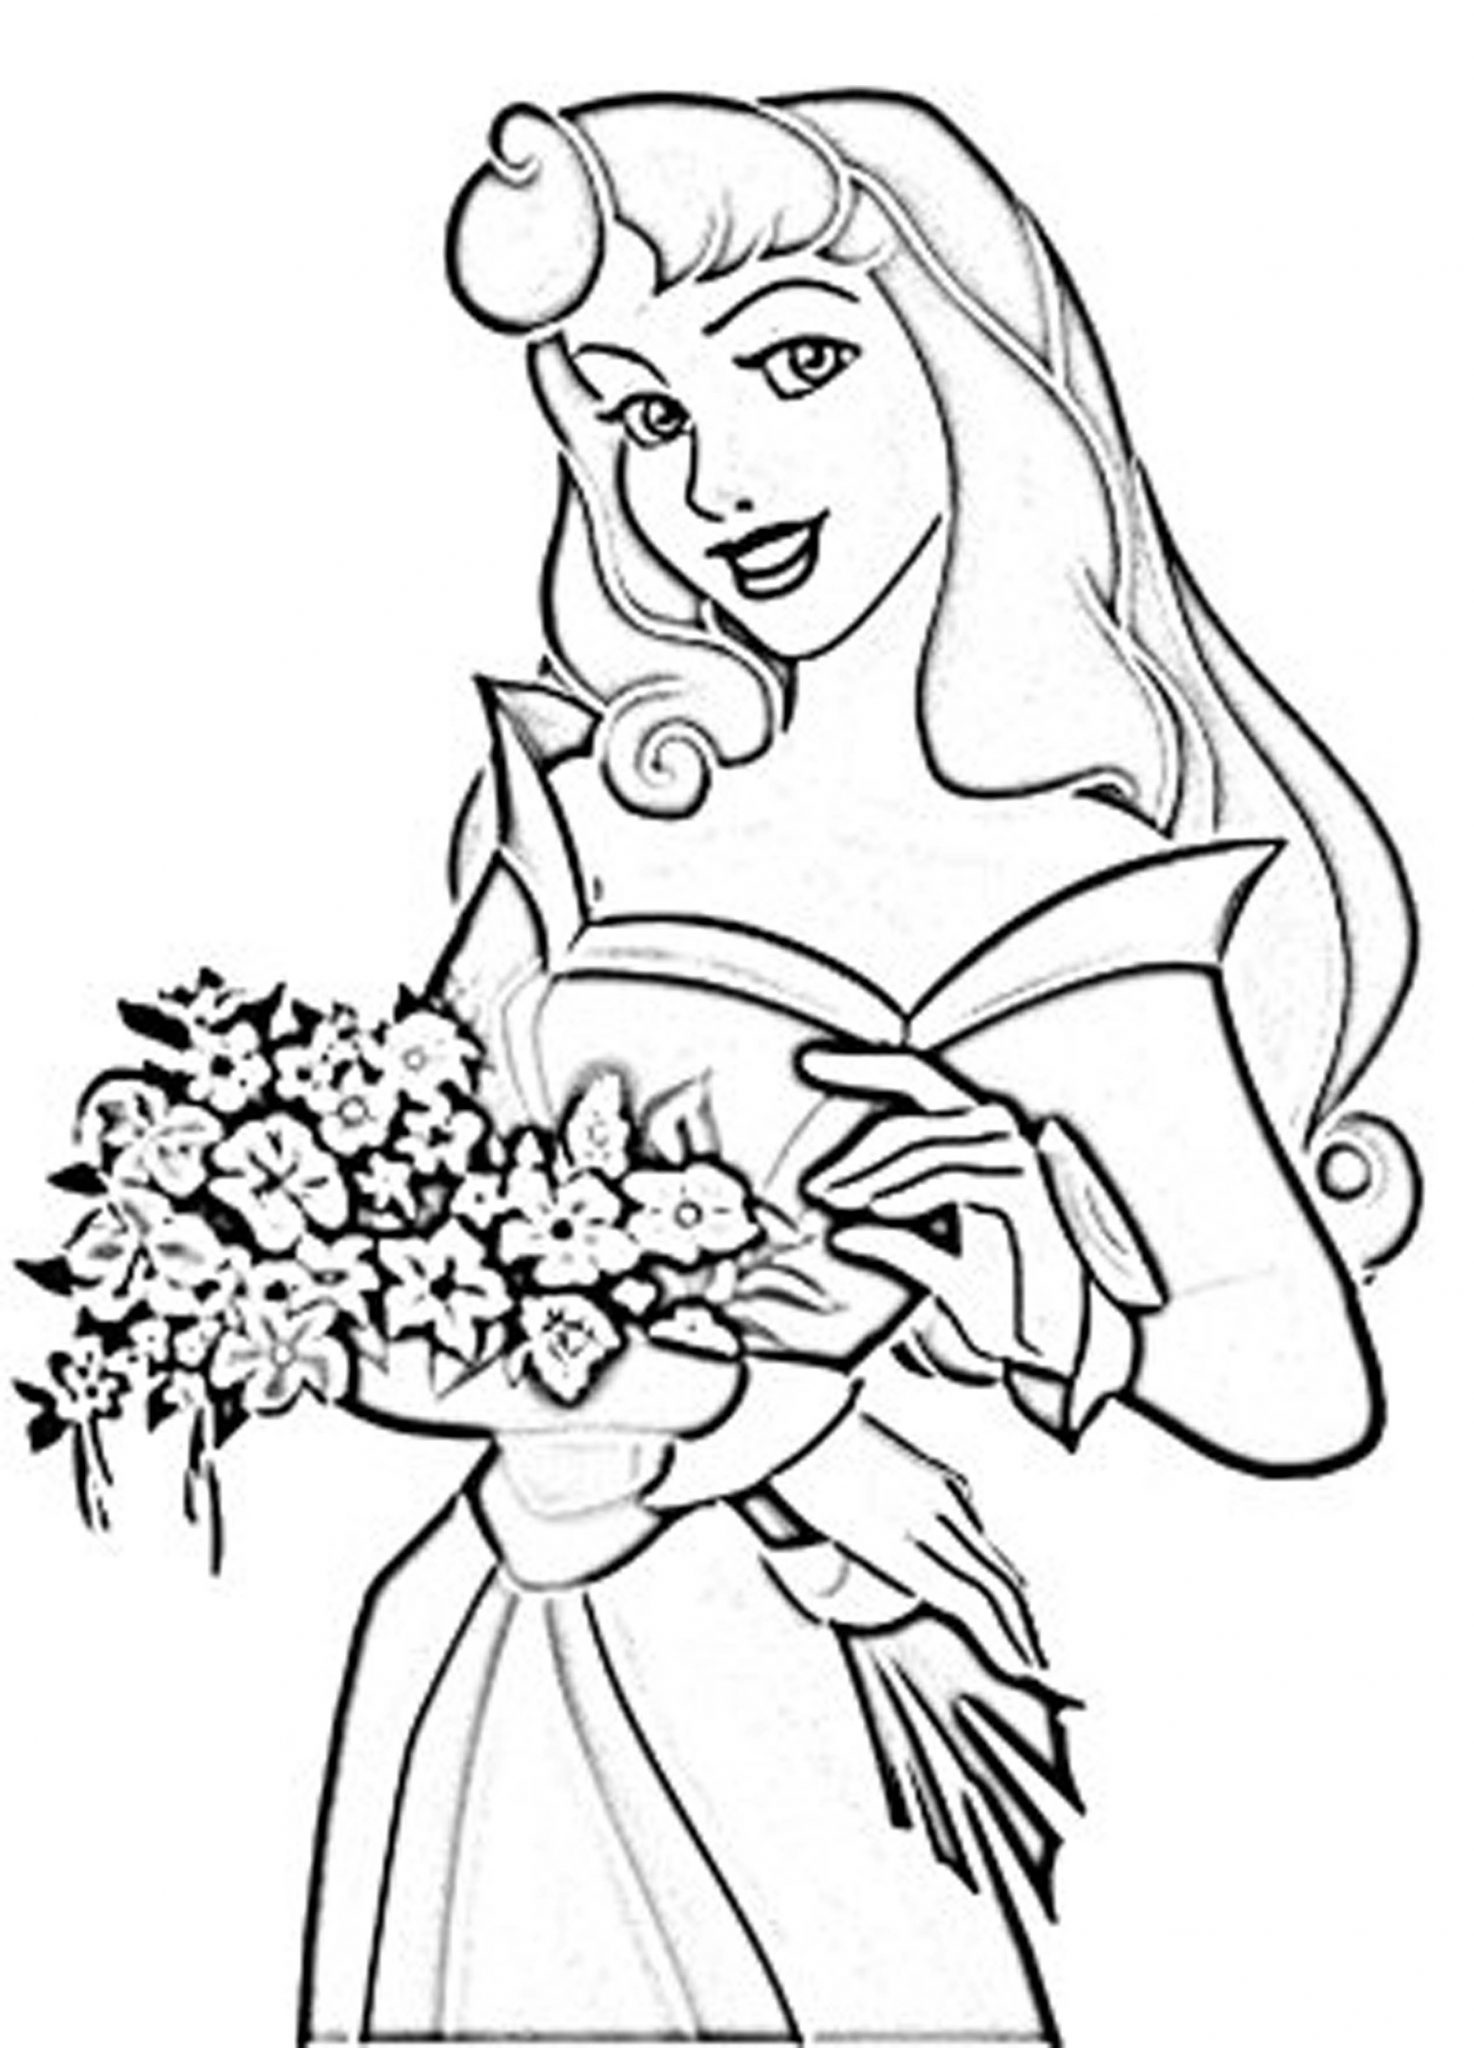 Print & Download - Princess Coloring Pages, Support The ...